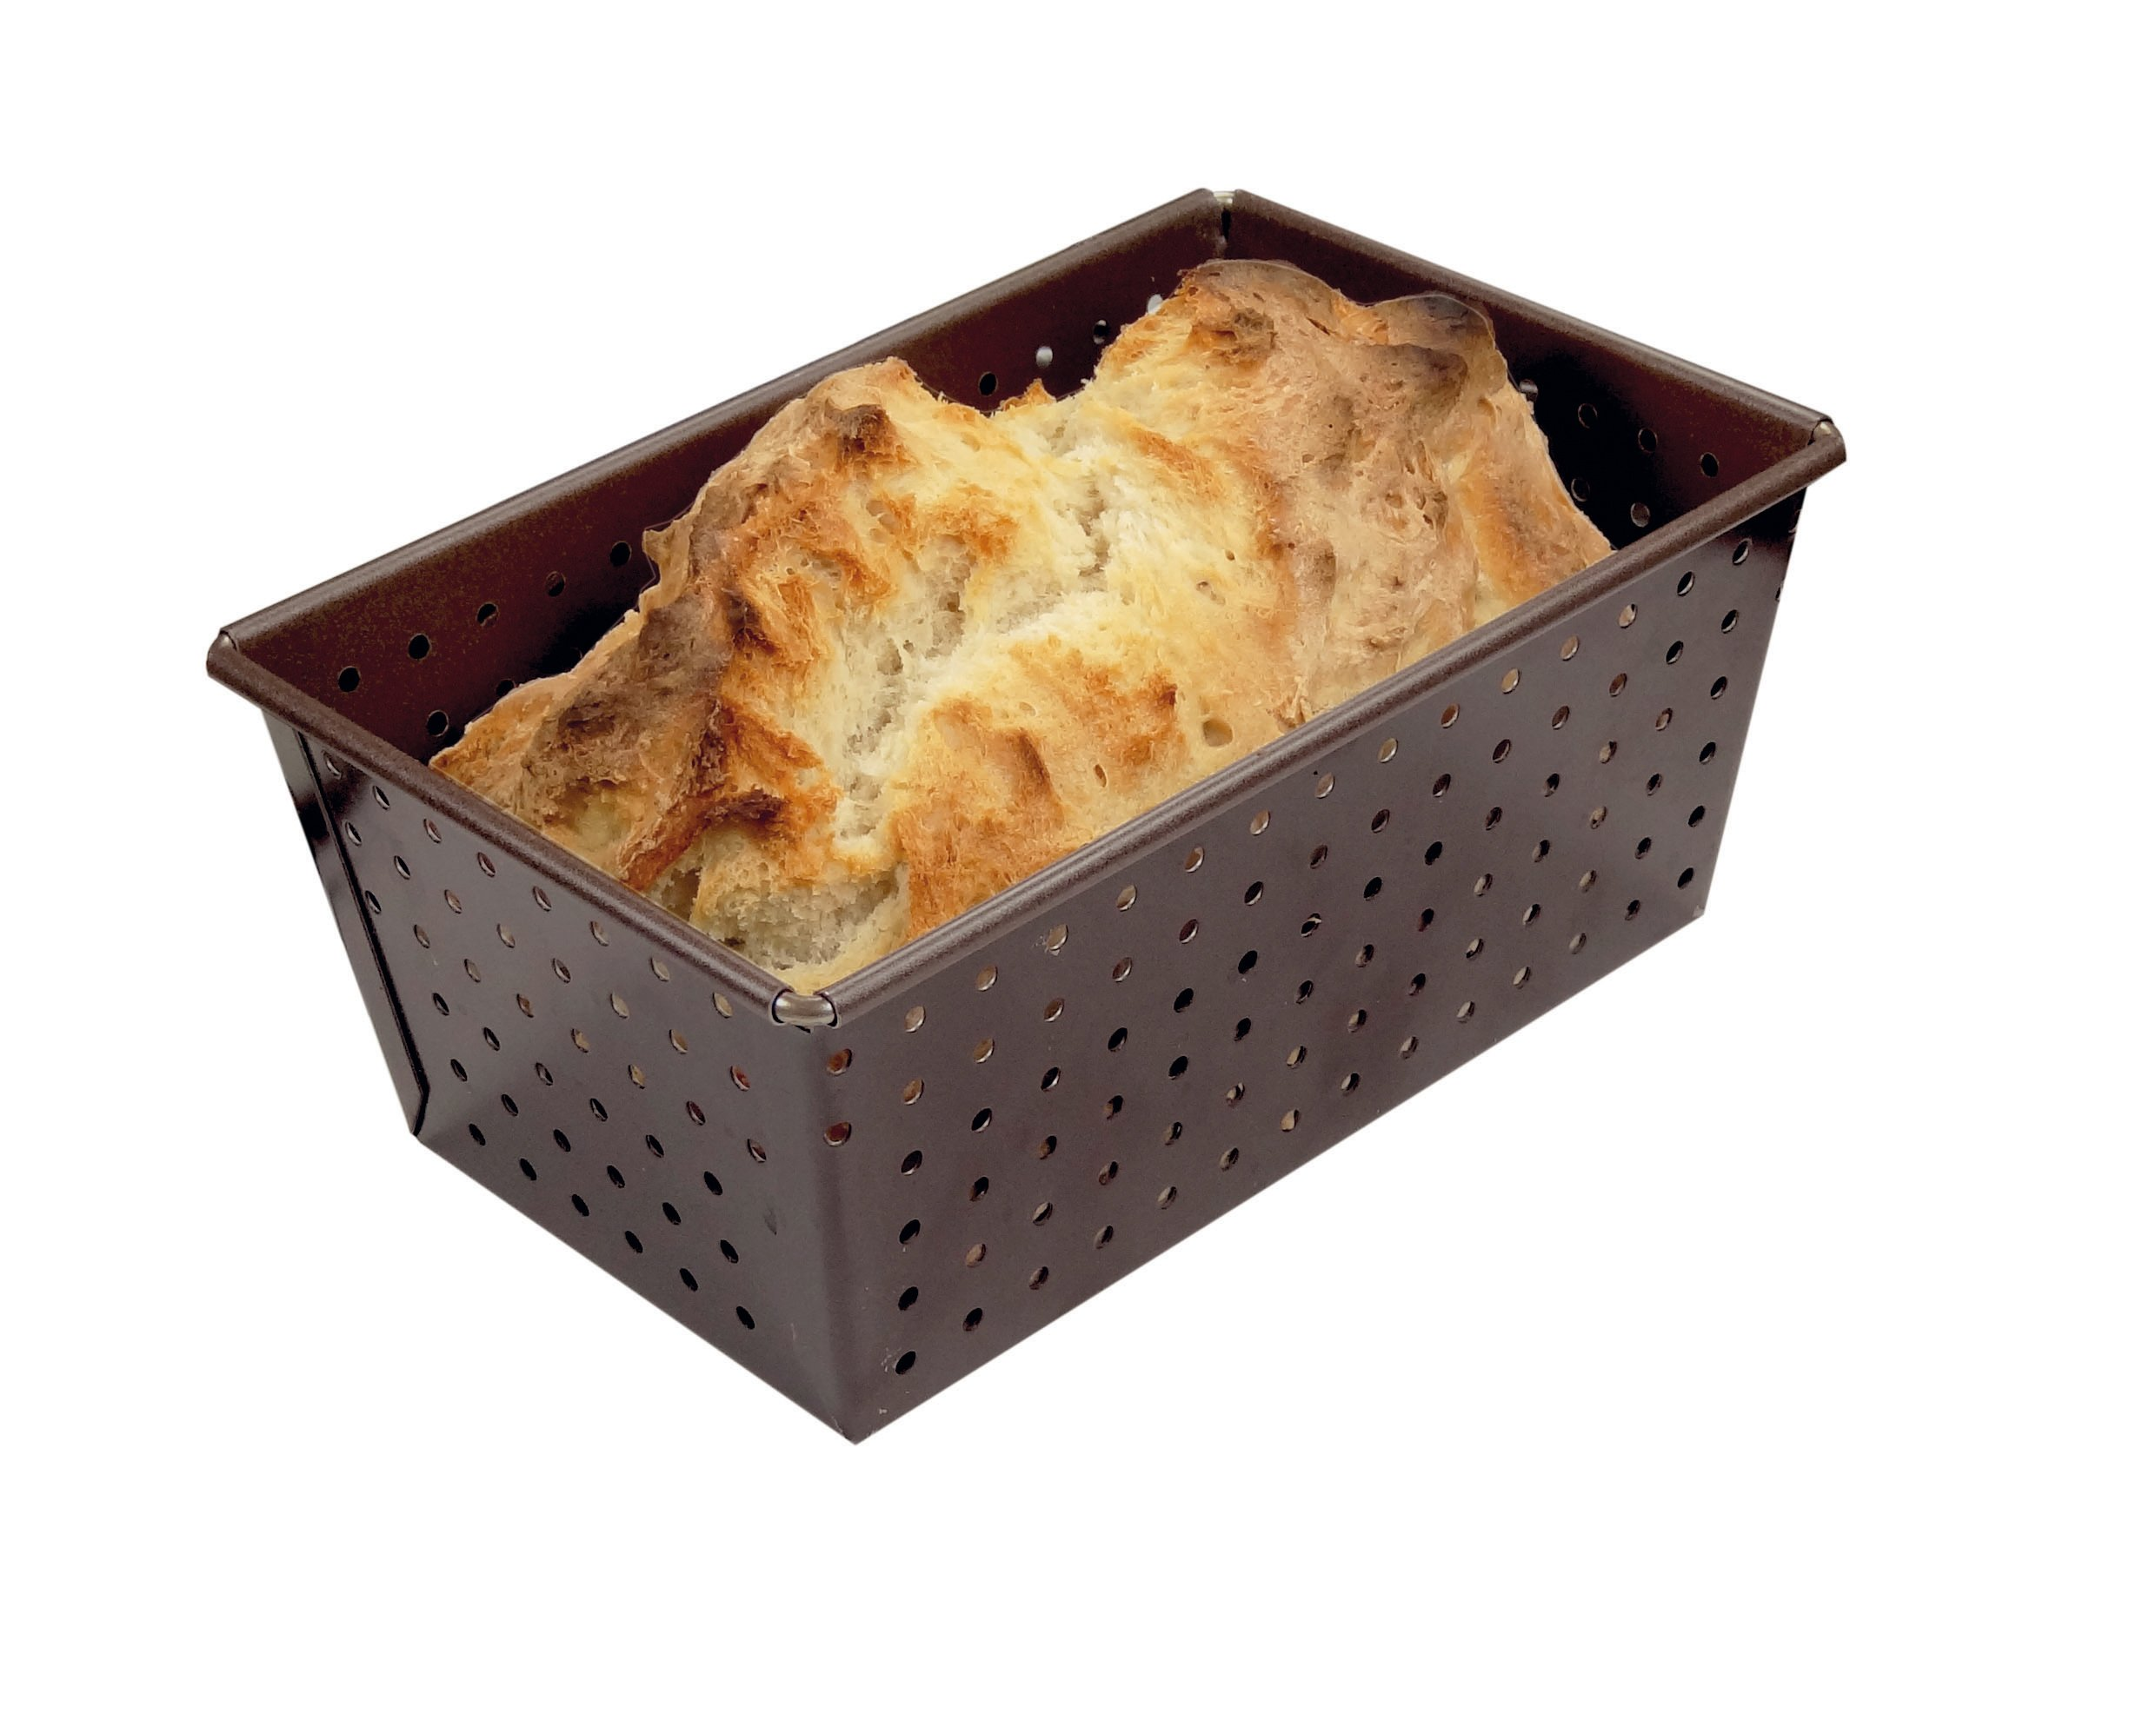 Paderno World Cuisine A4982313 Non-Stick Perforated Loaf Pan, Brown by Paderno World Cuisine (Image #2)